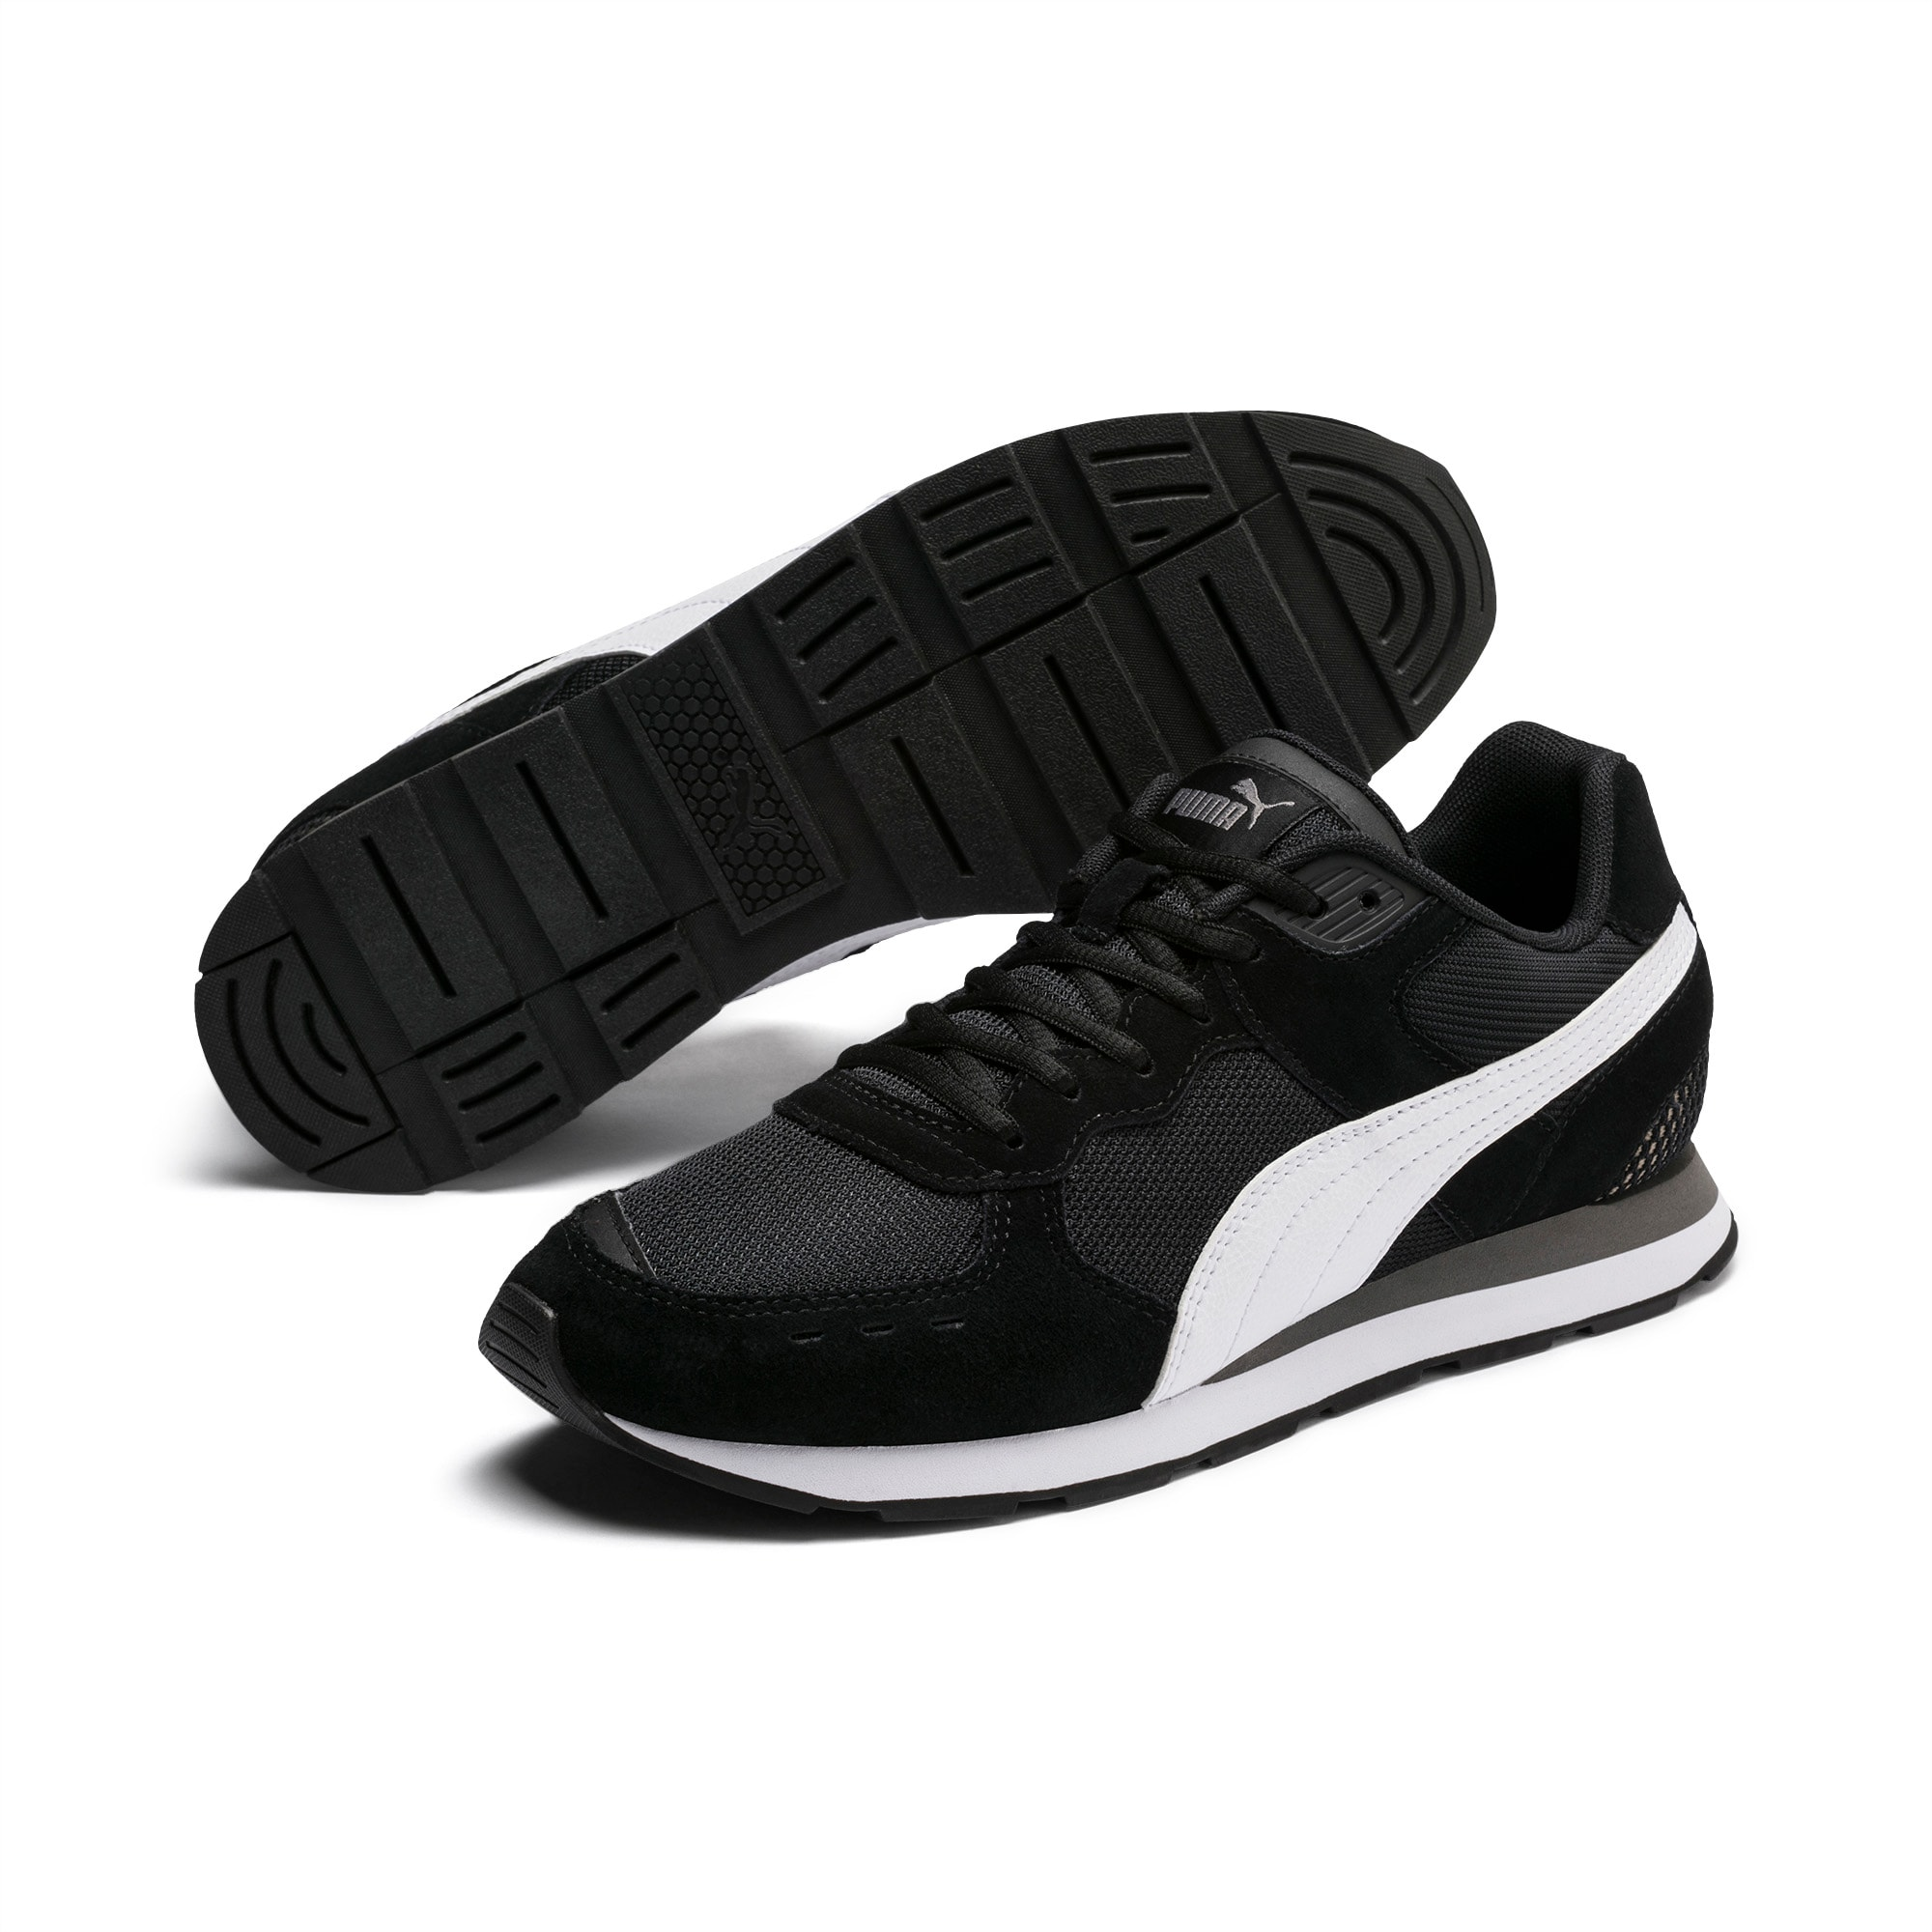 Vista Sneakers | PUMA US